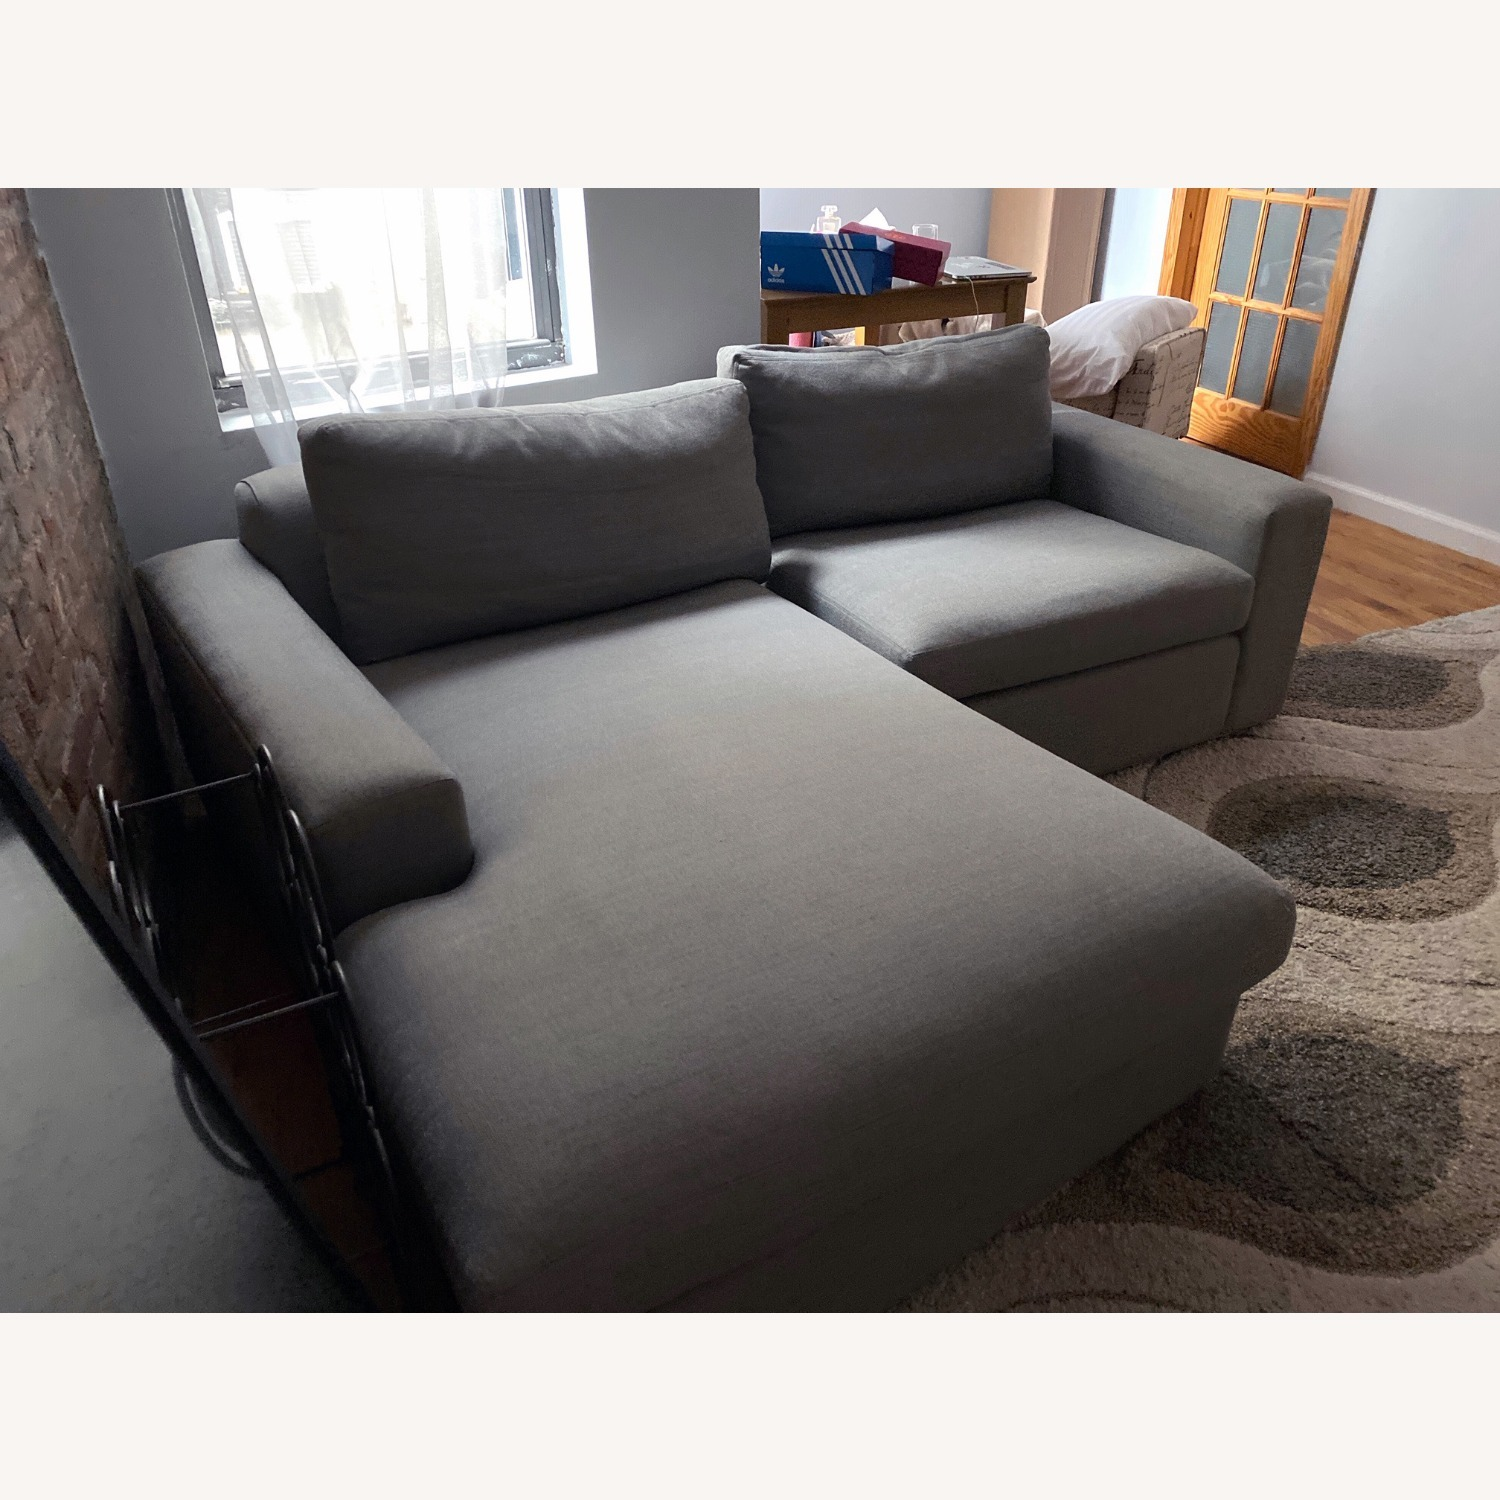 Room & Board Sectional Couch - image-4